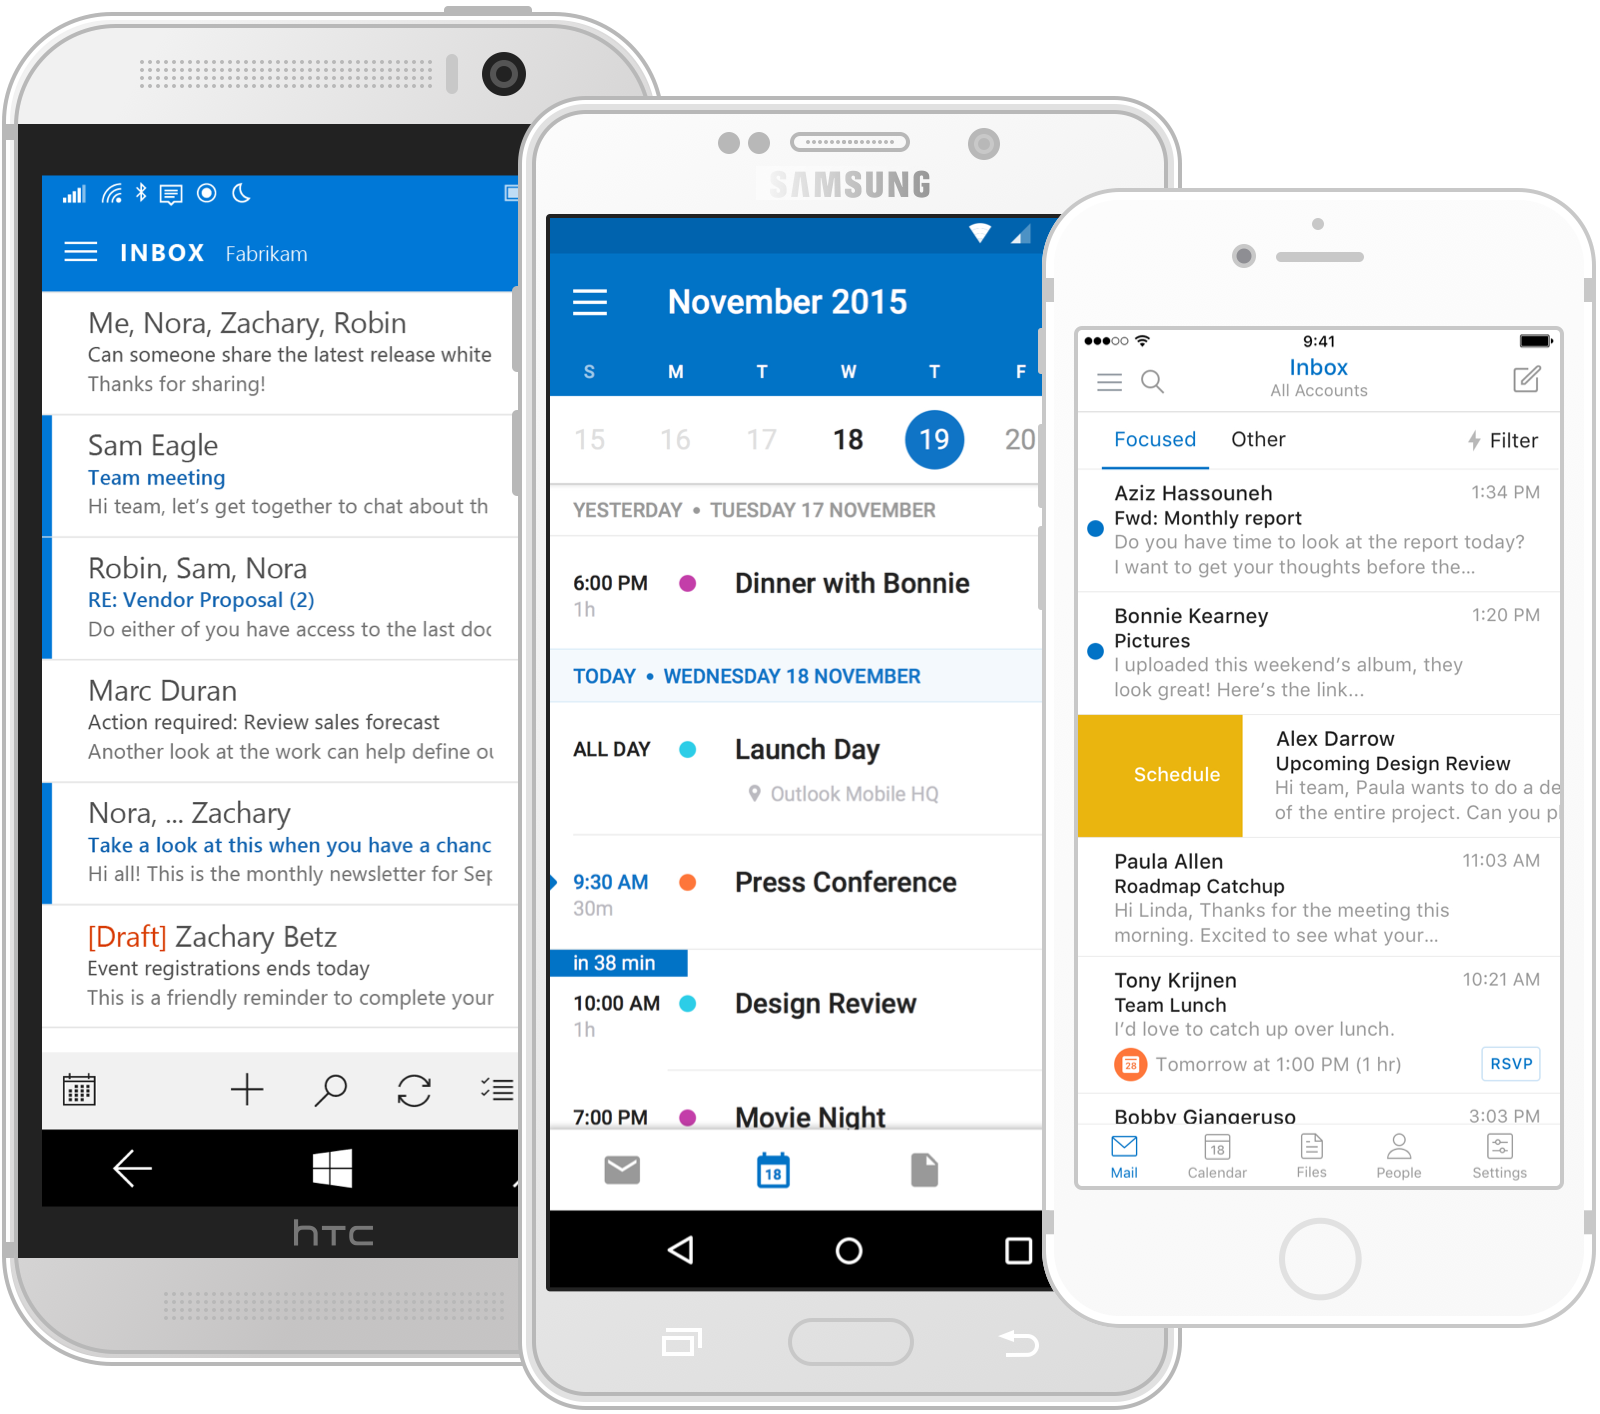 Outlook Mobile is available on Windows Phone, iPhones, and Android devices